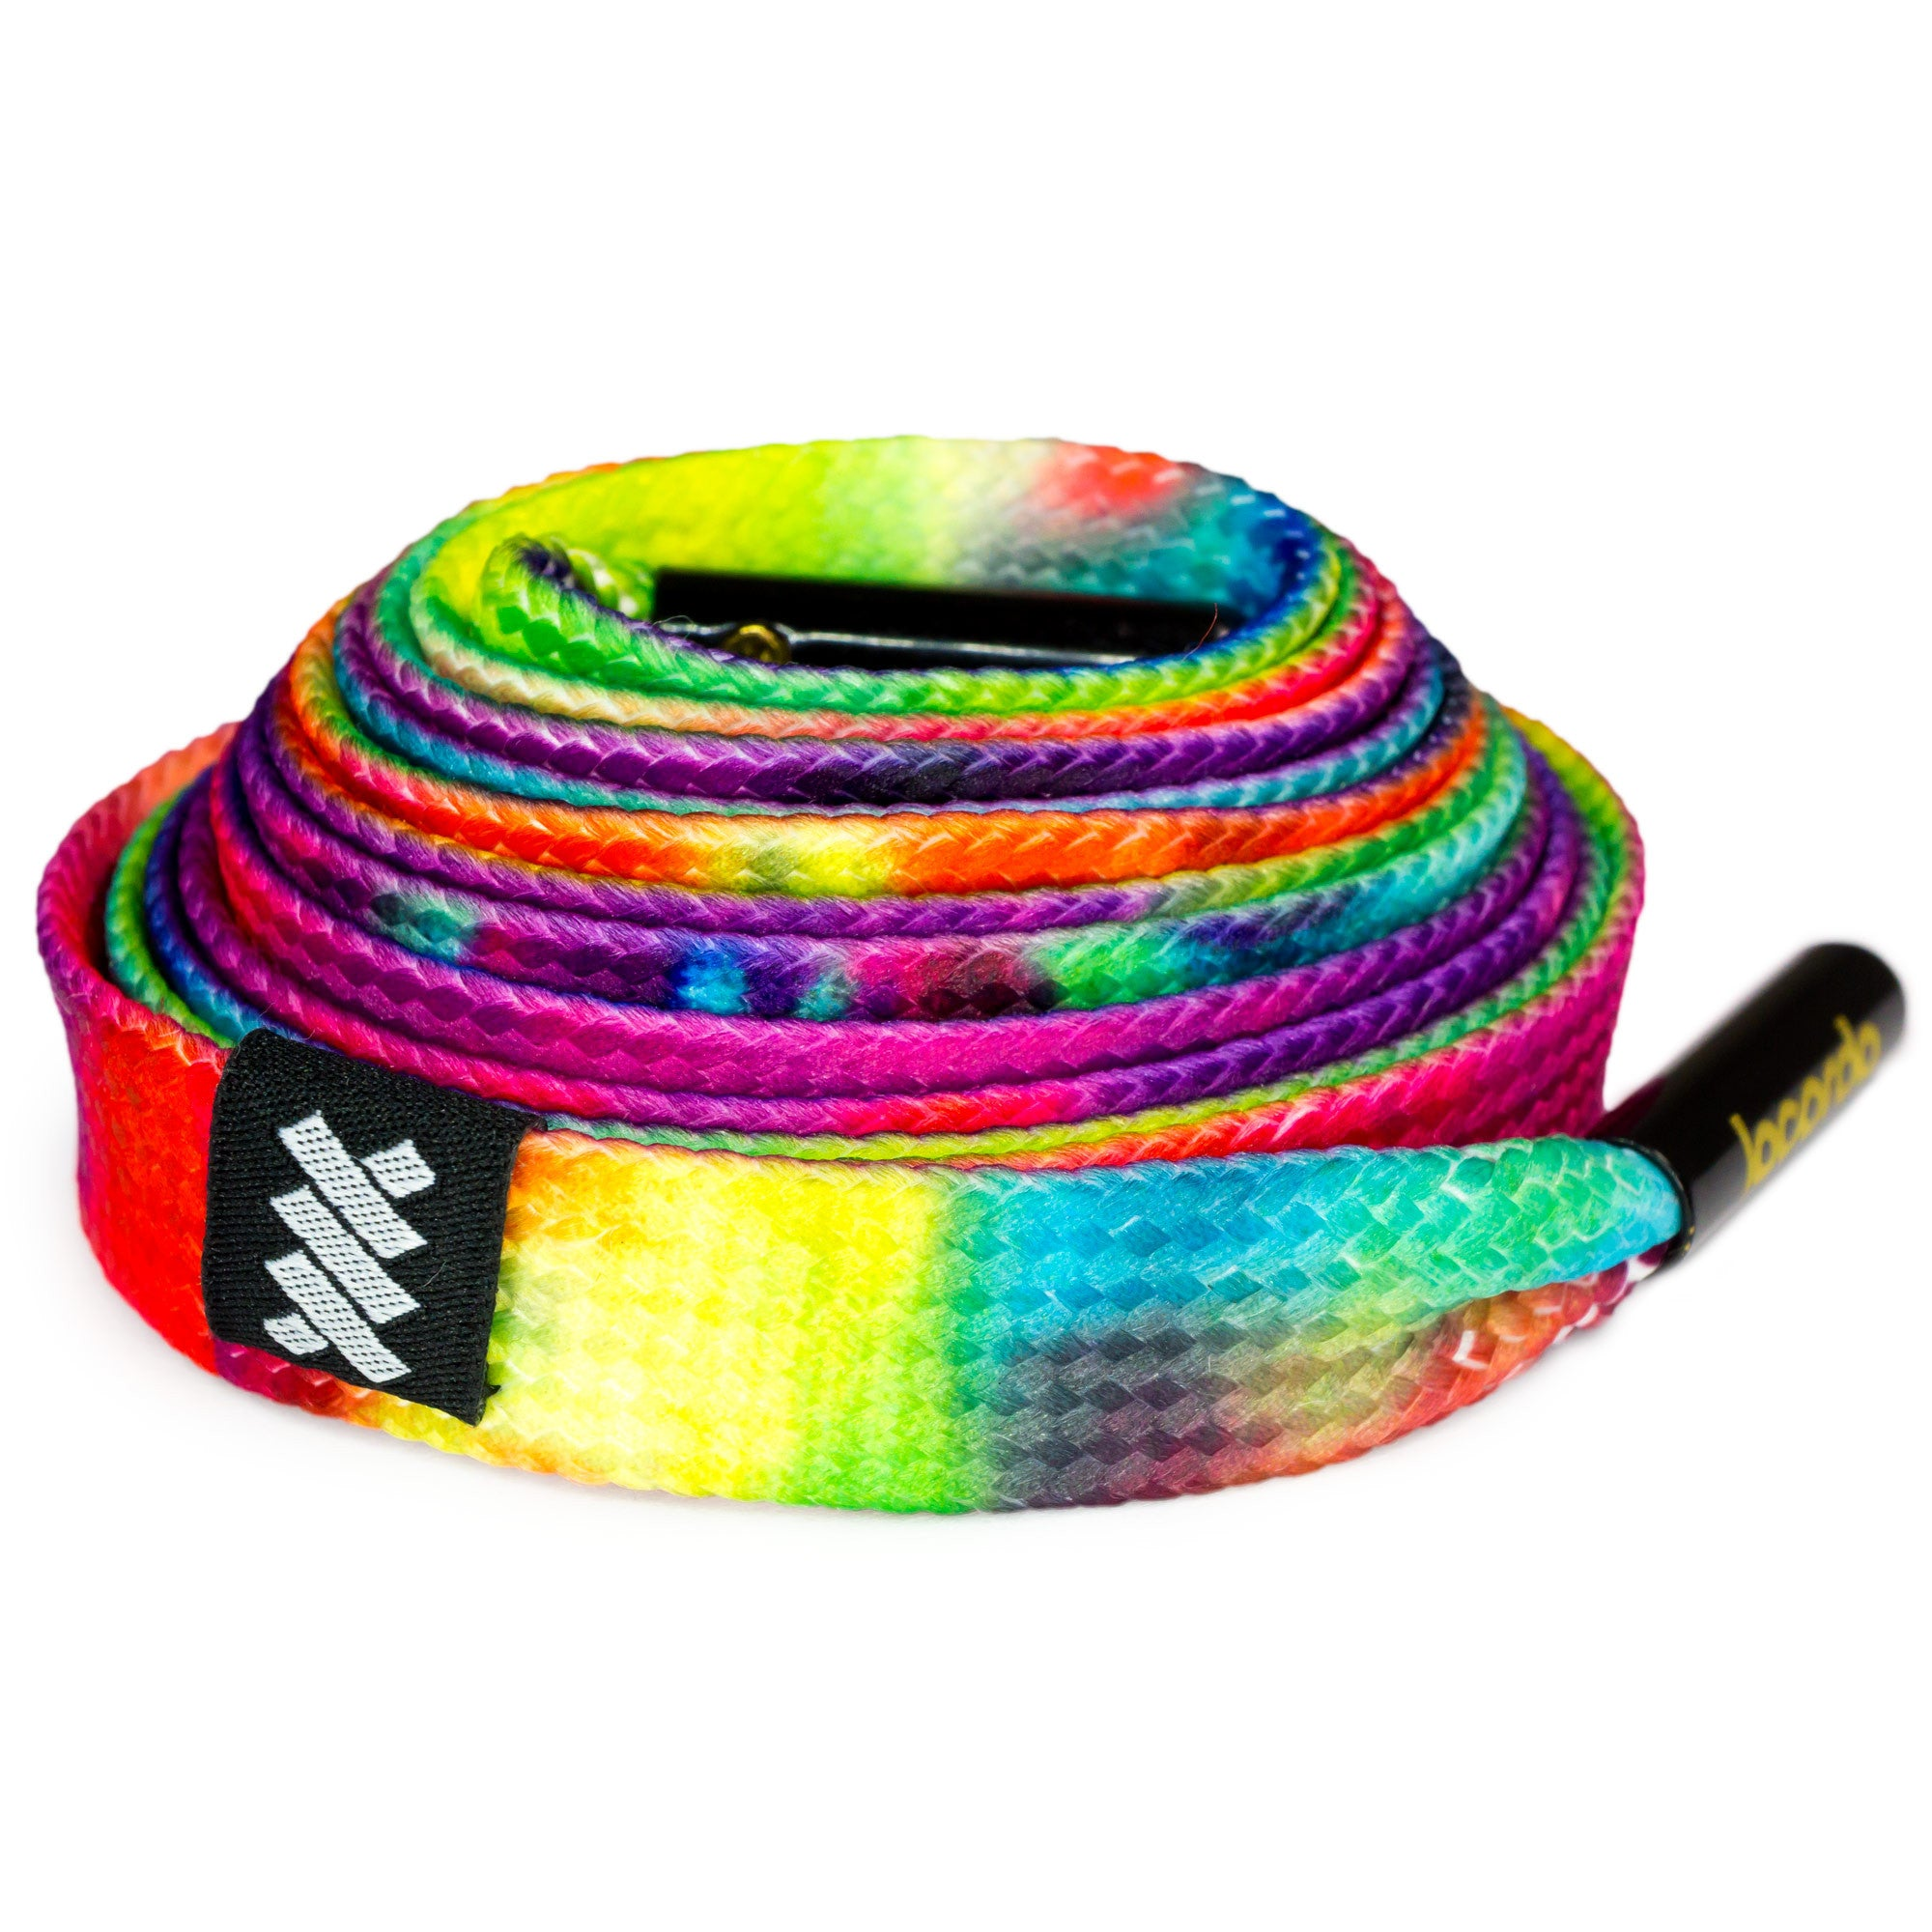 rubber loom rainbow usa for s clips of tie p picture bracelet vibrant pcs dye bands